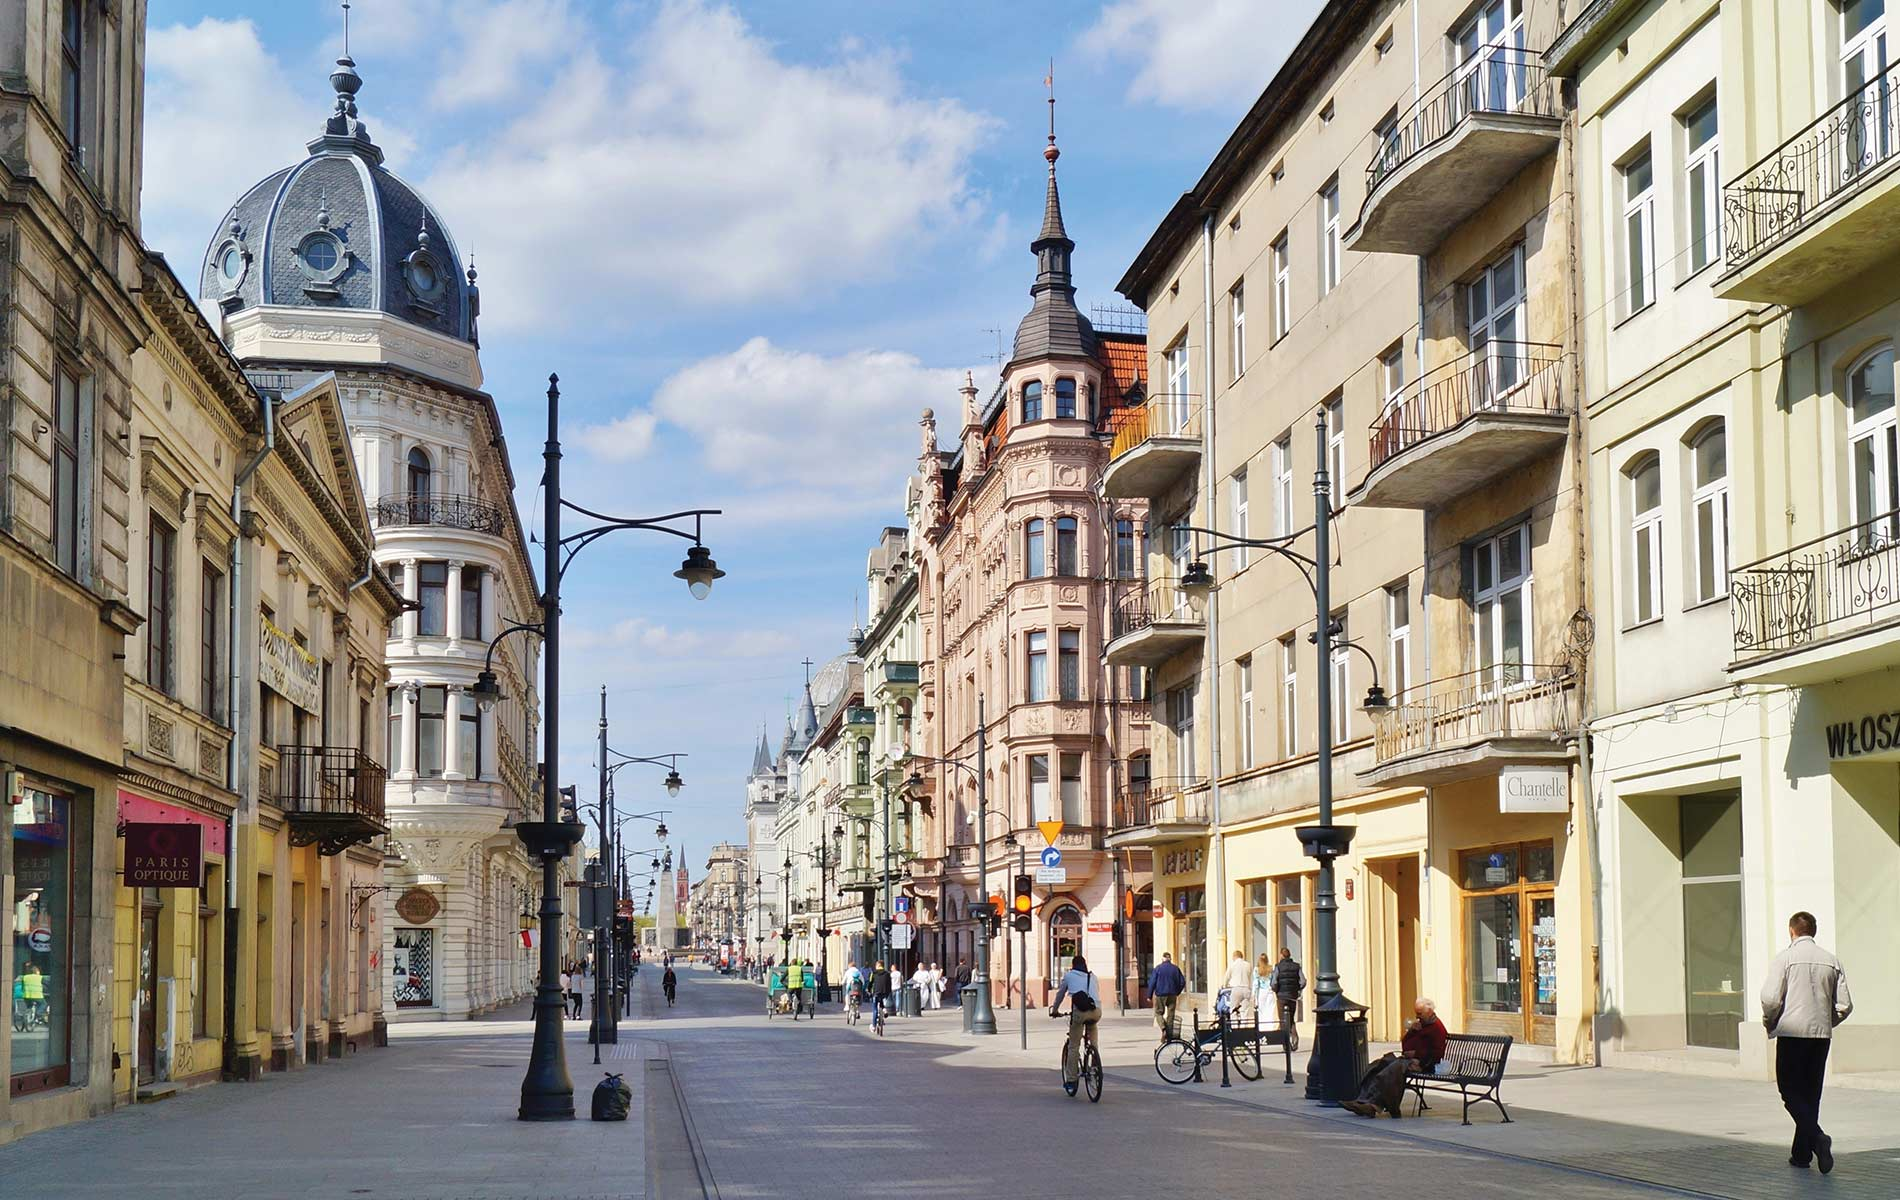 Passersby enjoy a sunny Sunday afternoon on Piotrkowska Street in Lodz. Photo by Mariola Anna S / Shutterstock